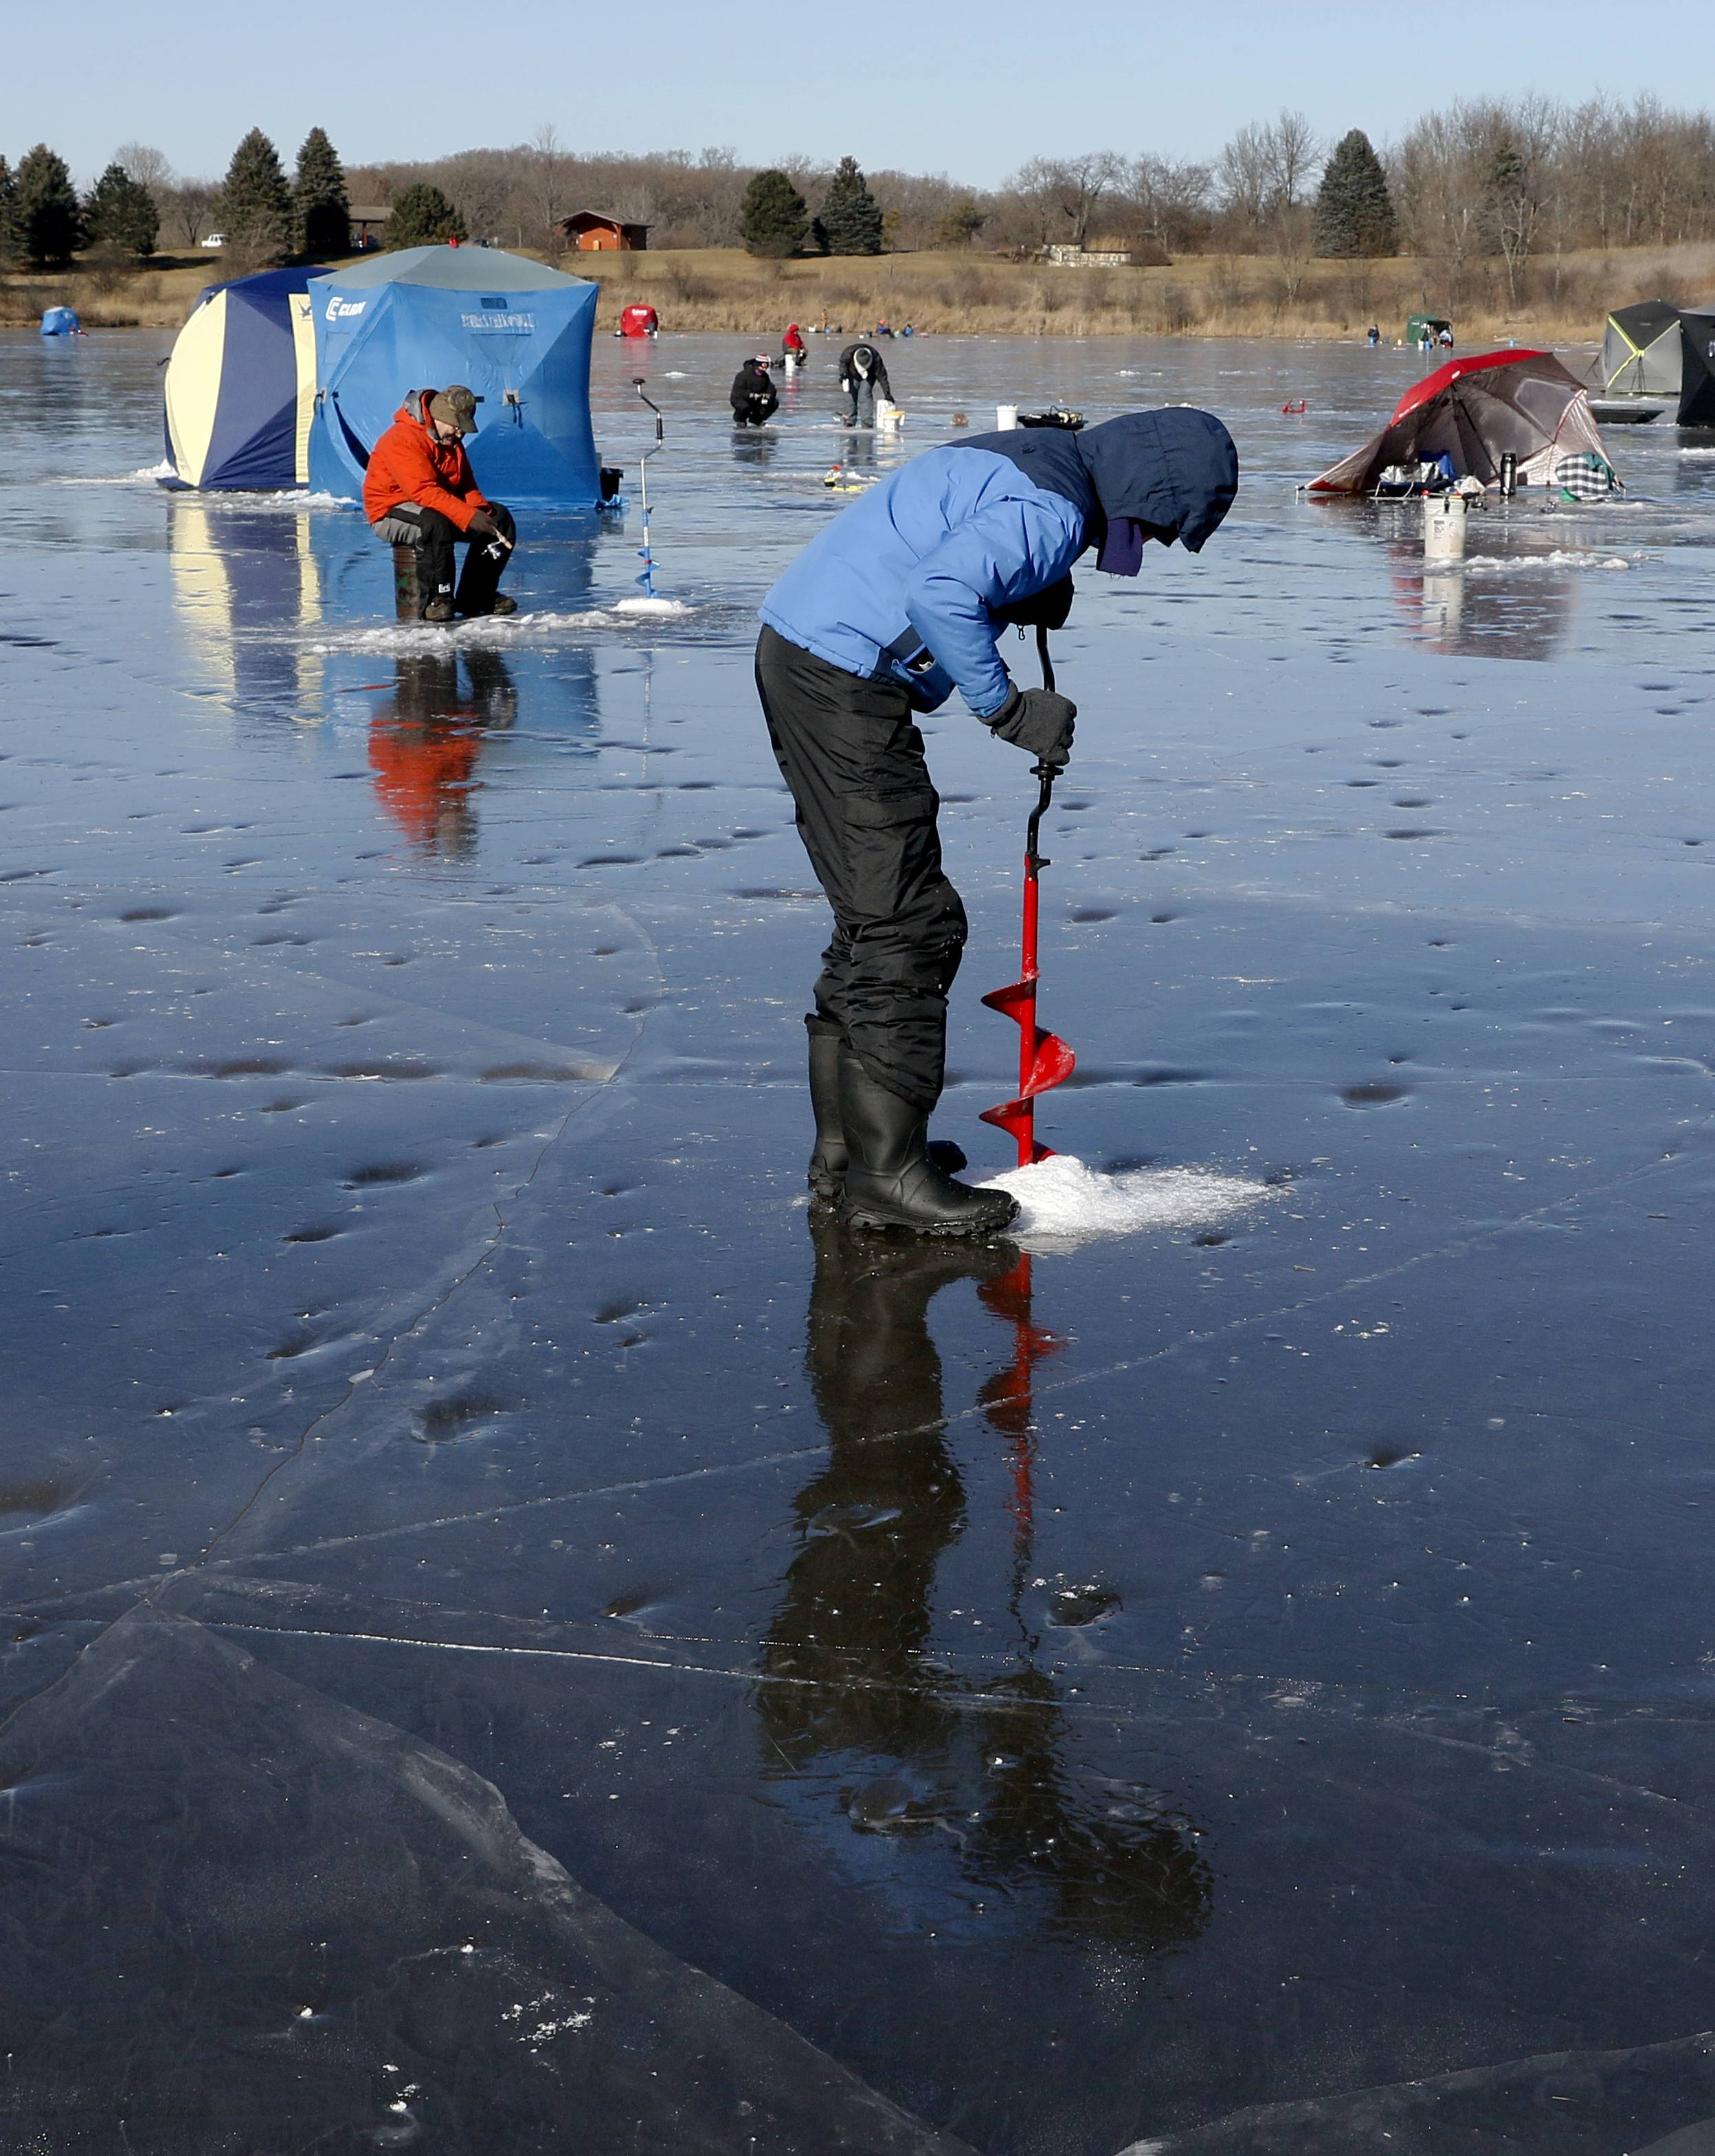 Paul Skaluba of Naperville bores a hole during the DuPage Forest Preserve District's Hard Water Classic ice fishing tournament at Silver Lake in the Blackwell Forest Preserve. Skaluba used a sucker fish as bait hoping to catch a Northern Pike.